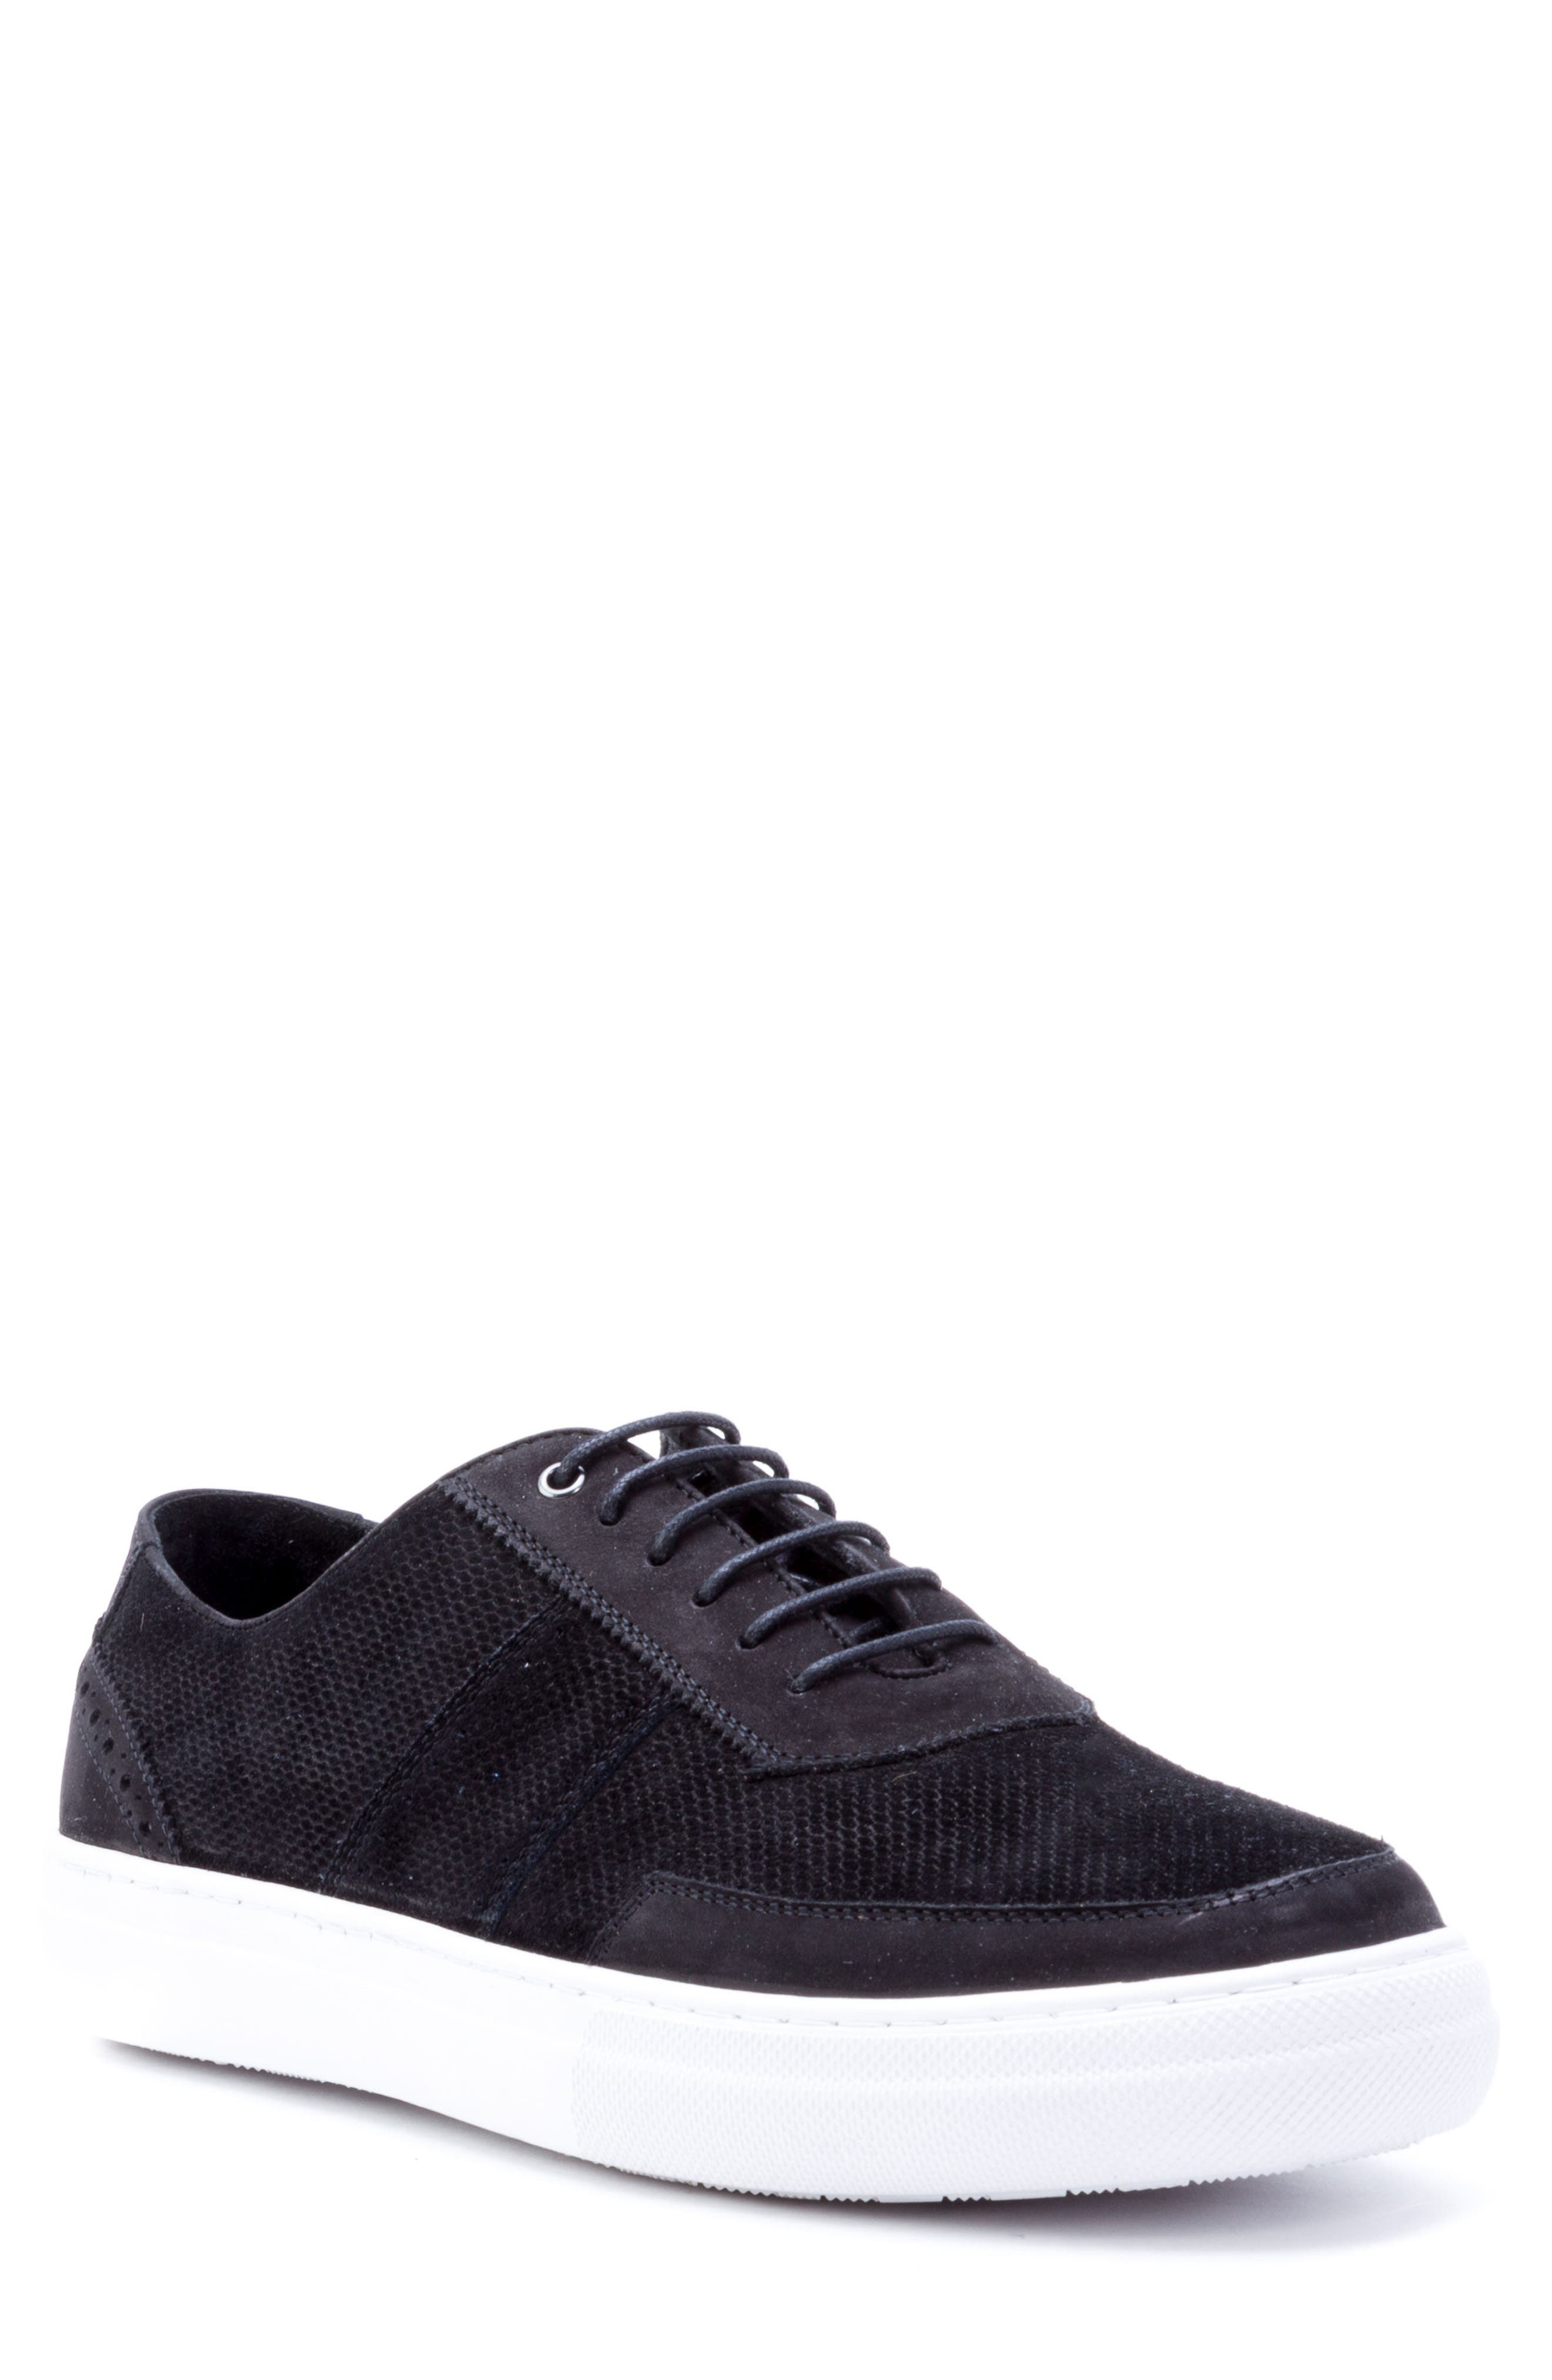 House Low Top Sneaker,                         Main,                         color, Black Suede/ Leather